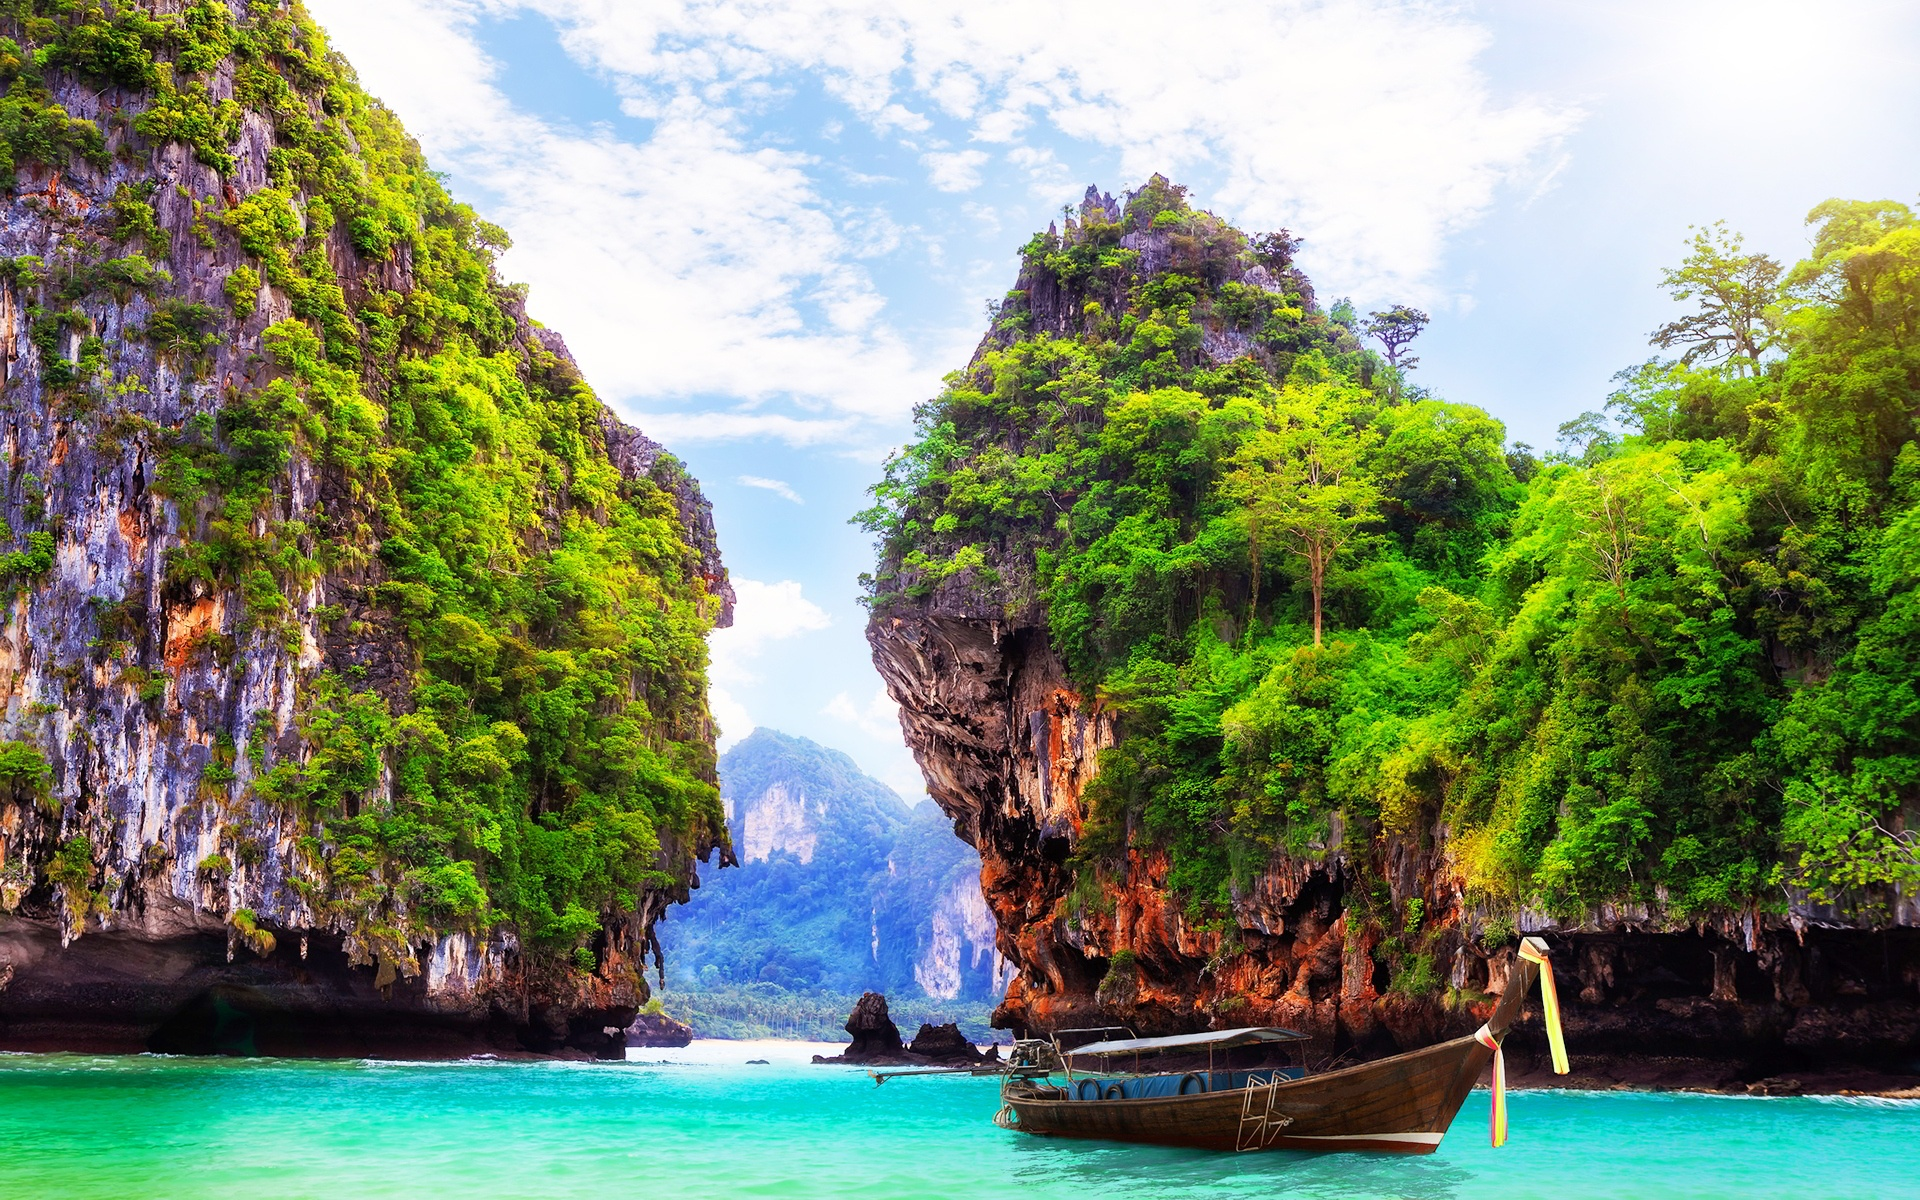 Amaizing Nature in Thailand 955.41 Kb